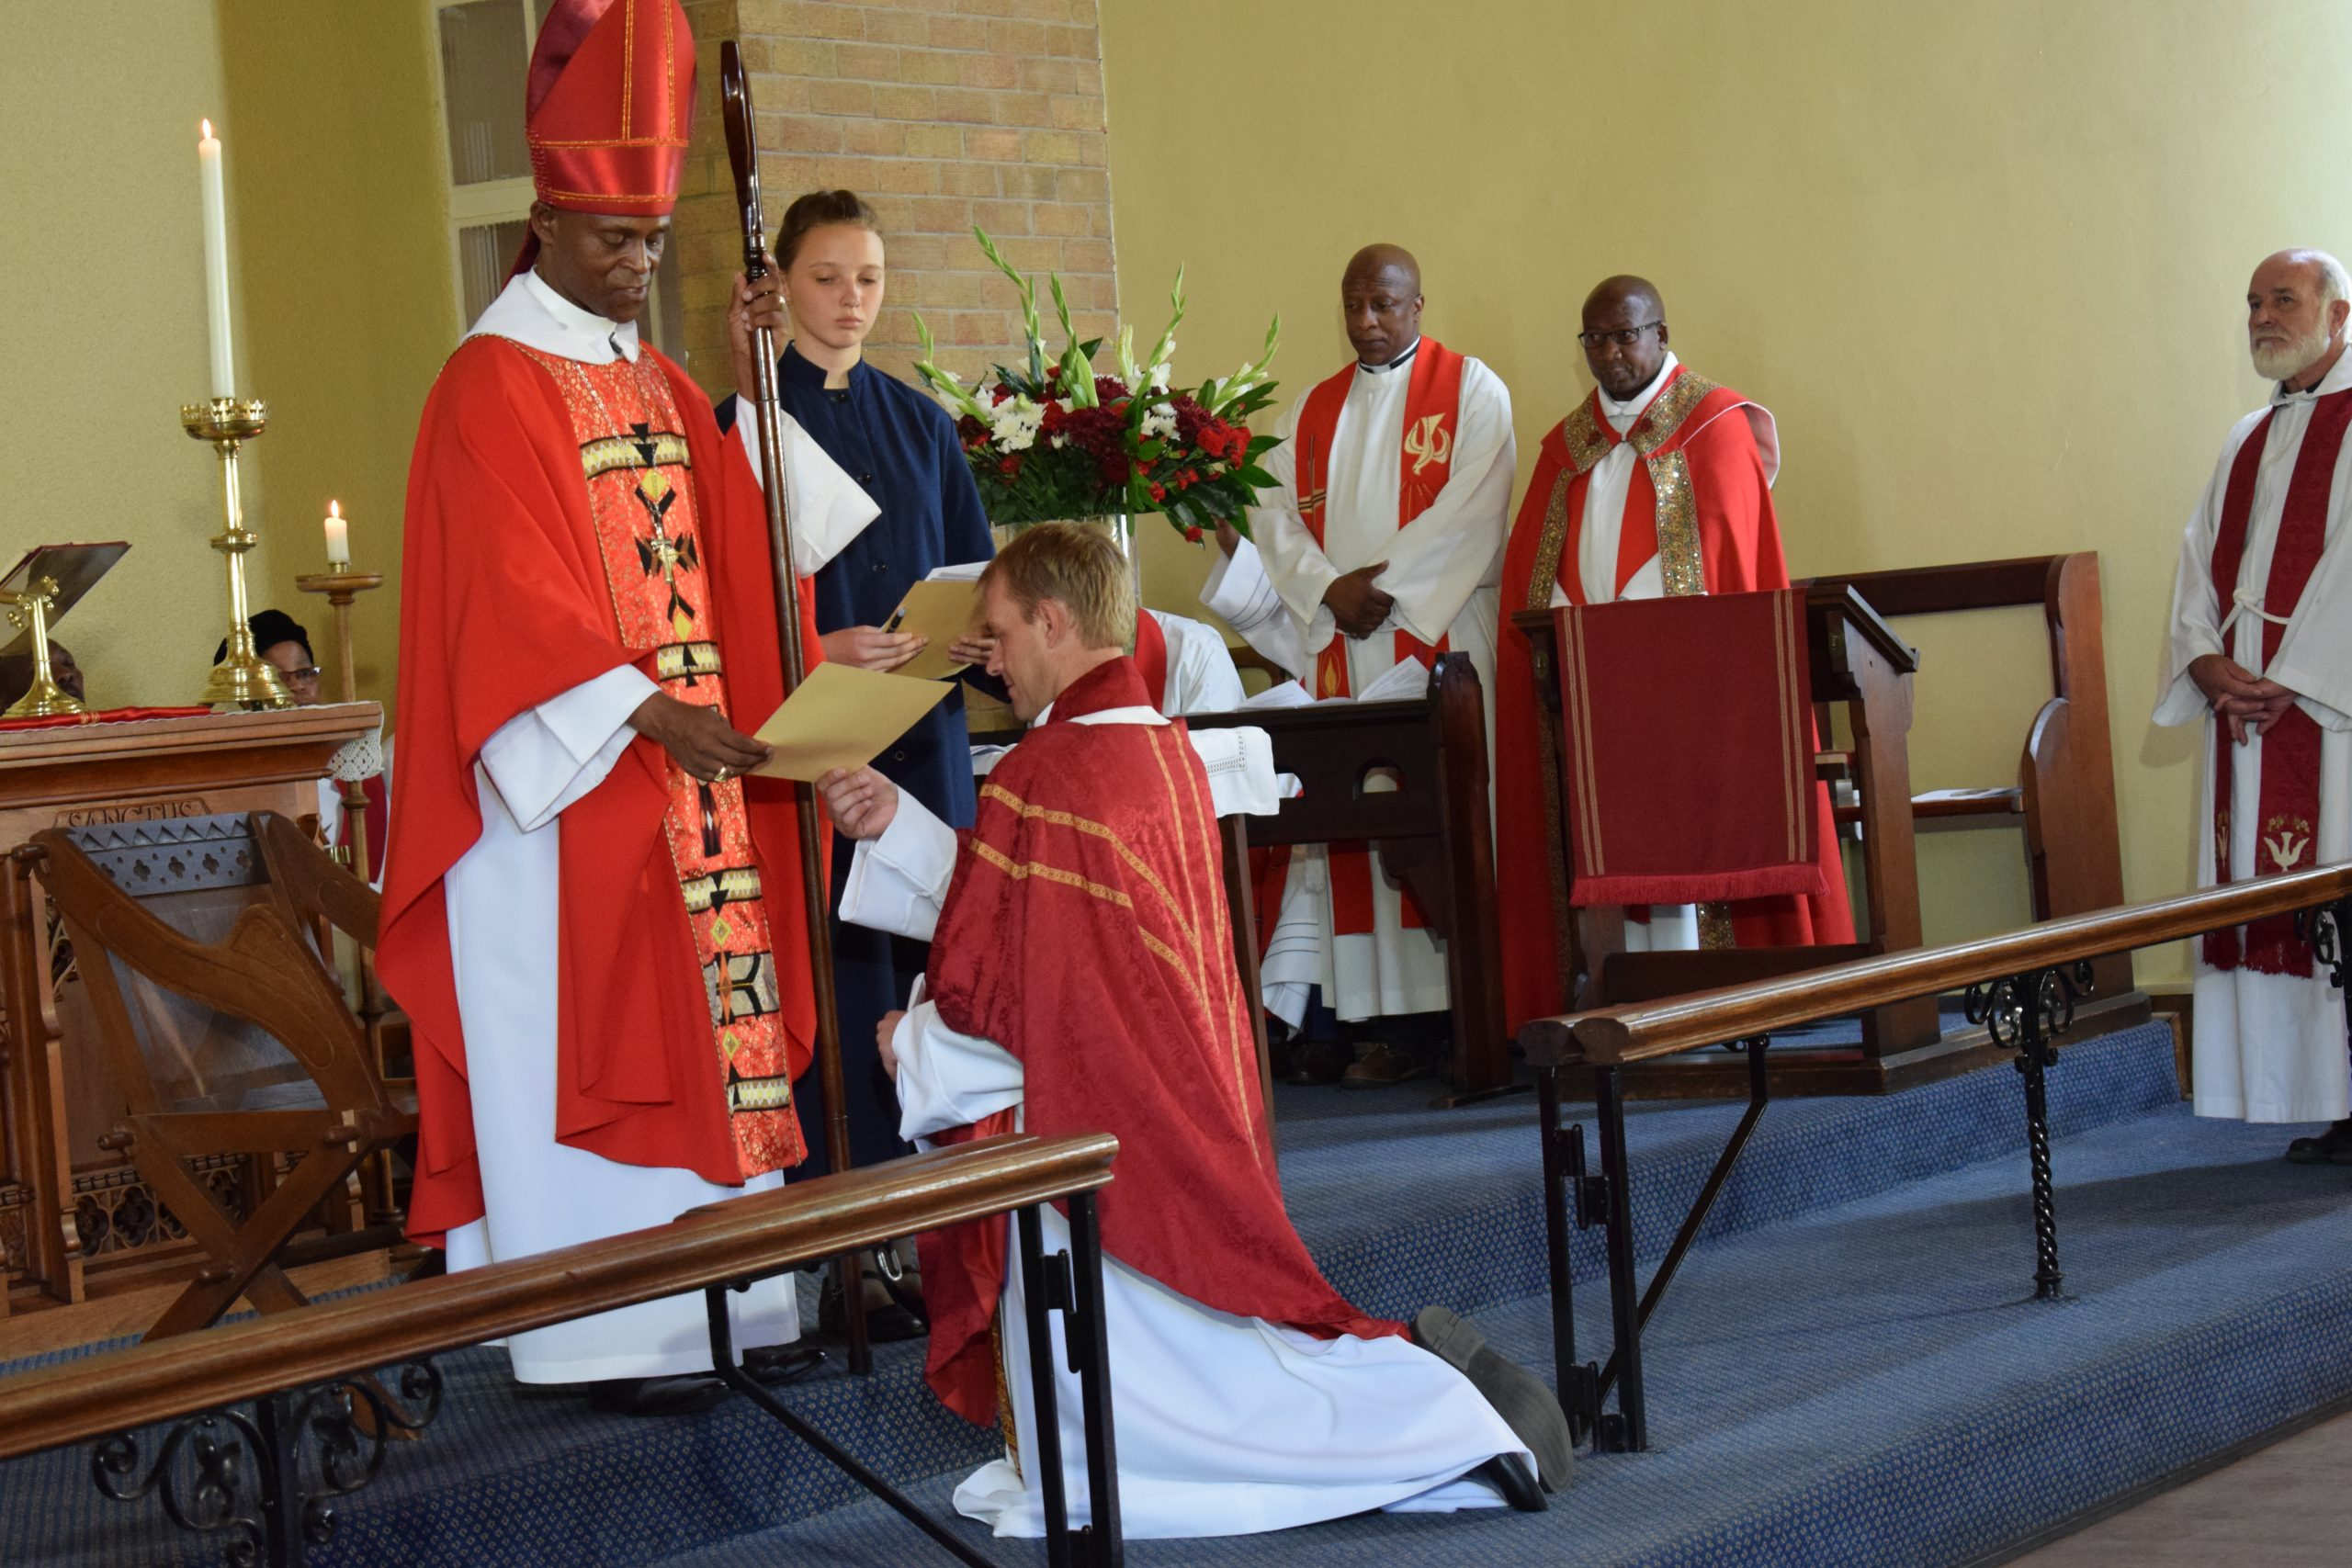 Father Grant's ordination in SMS Chapel momentous and historic